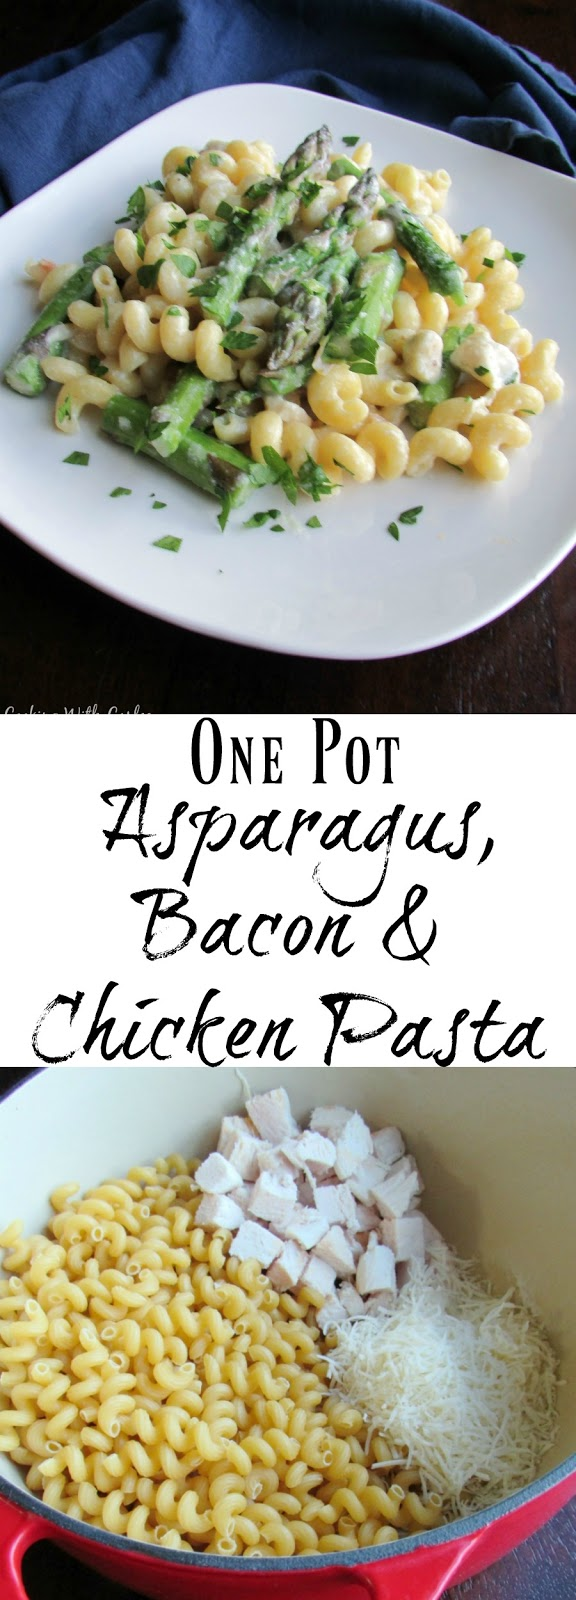 This complete dinner comes together in one pot in under a half hour! Chicken, bacon, and asparagus in a creamy pasta with almost no dishes to do!